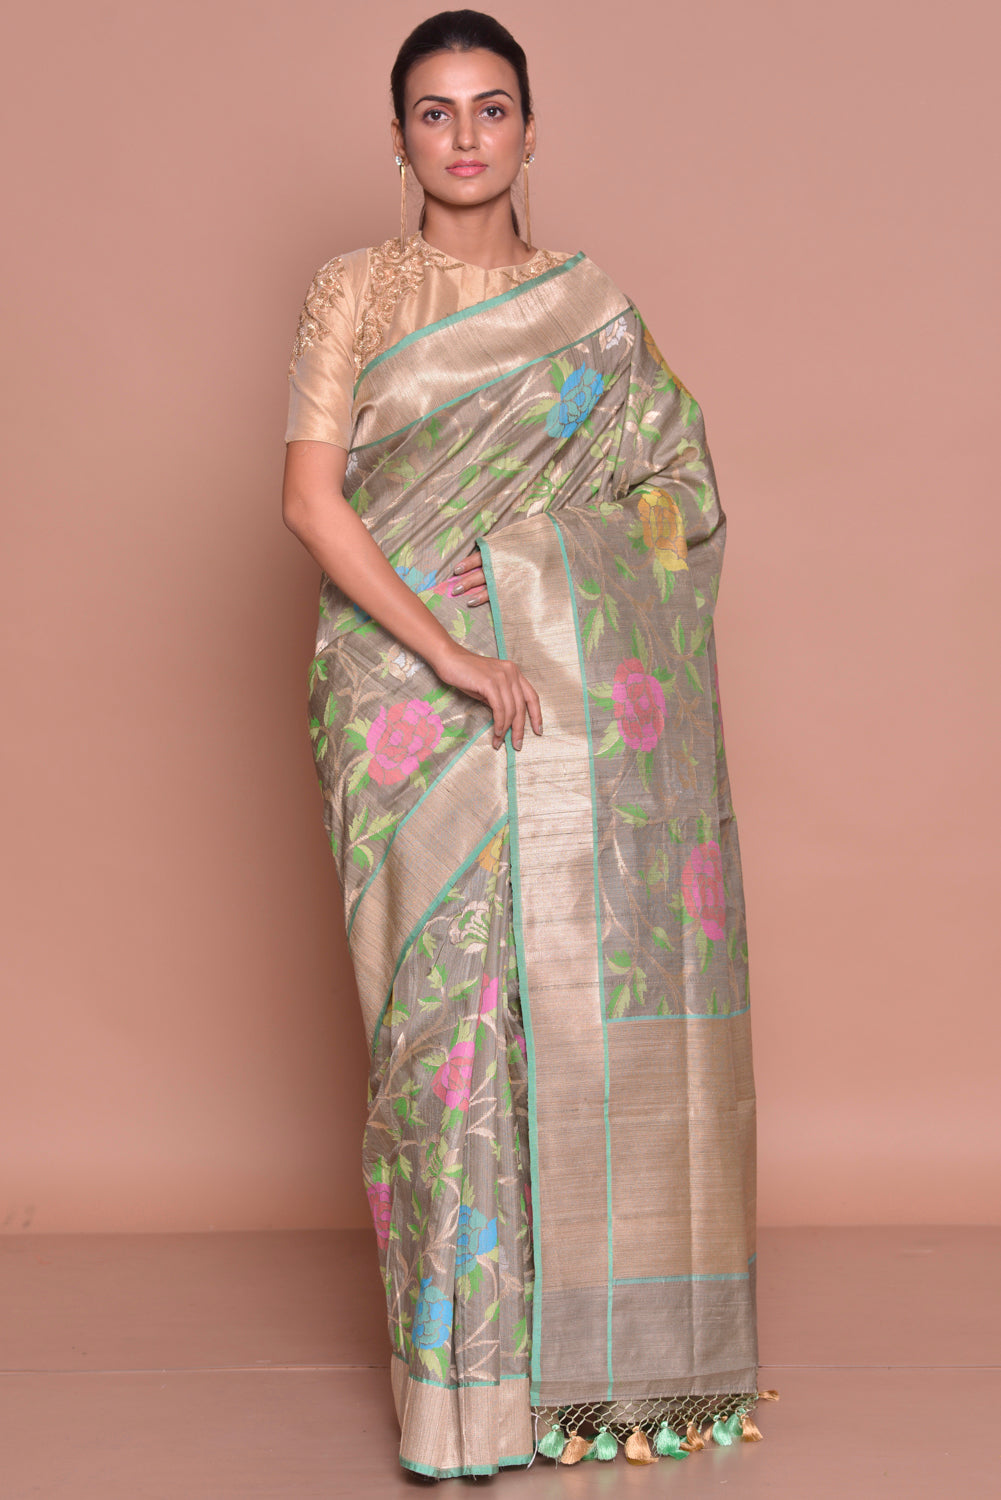 Buy alluring grey floral Banarasi silk saree online in USA with zari border and beige embroidered sari blouse. Set ethnic fashion goals with exquisite designer sarees with blouse, Banarasi sarees, Kanchipuram saris from Pure Elegance Indian luxury clothing store in USA.-full view